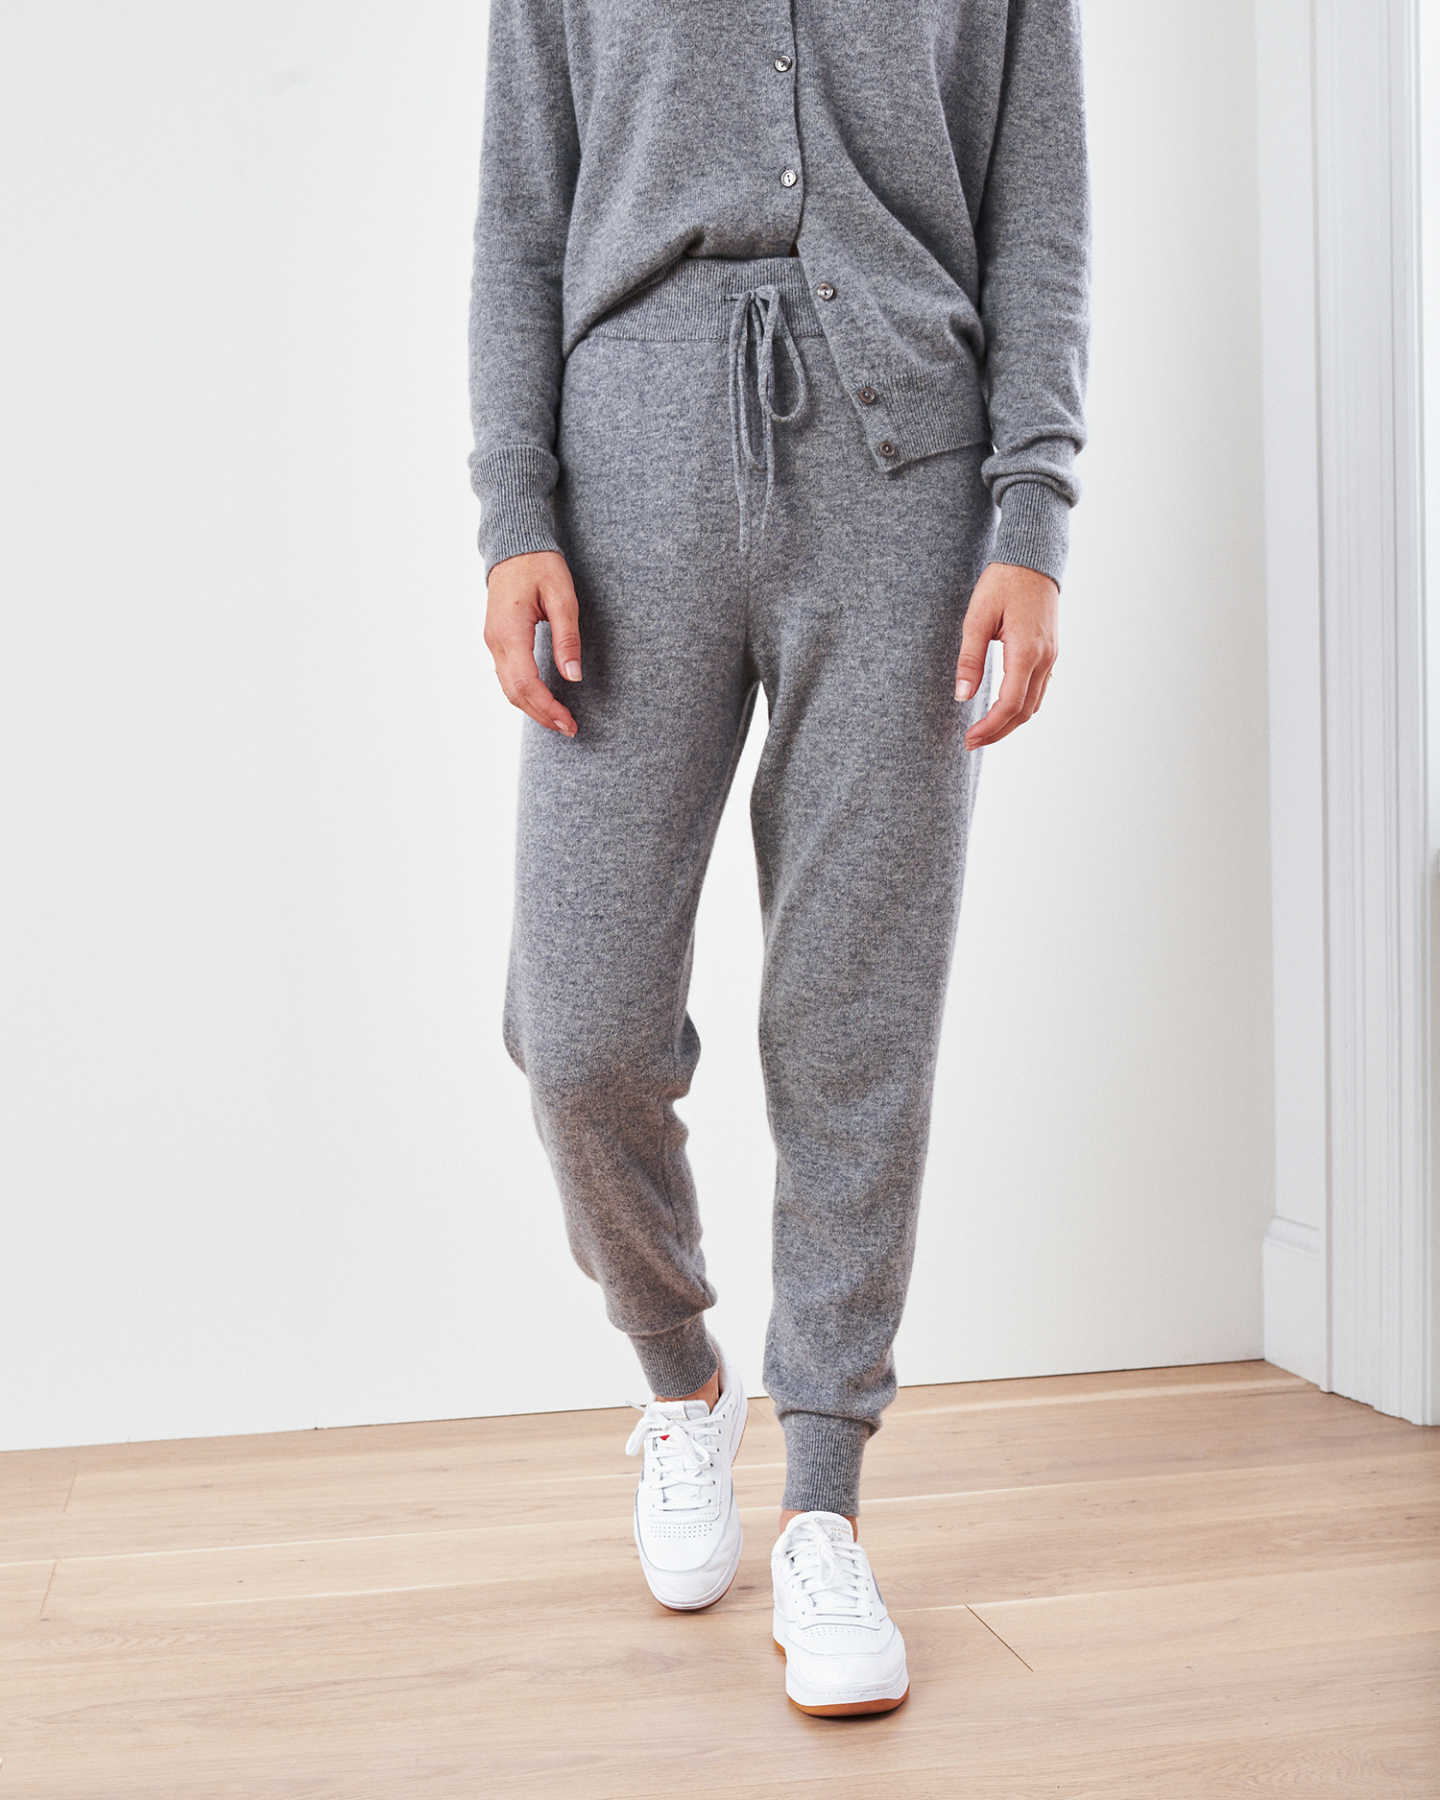 Woman wearing grey cashmere sweatpants & cashmere joggers with sneakers